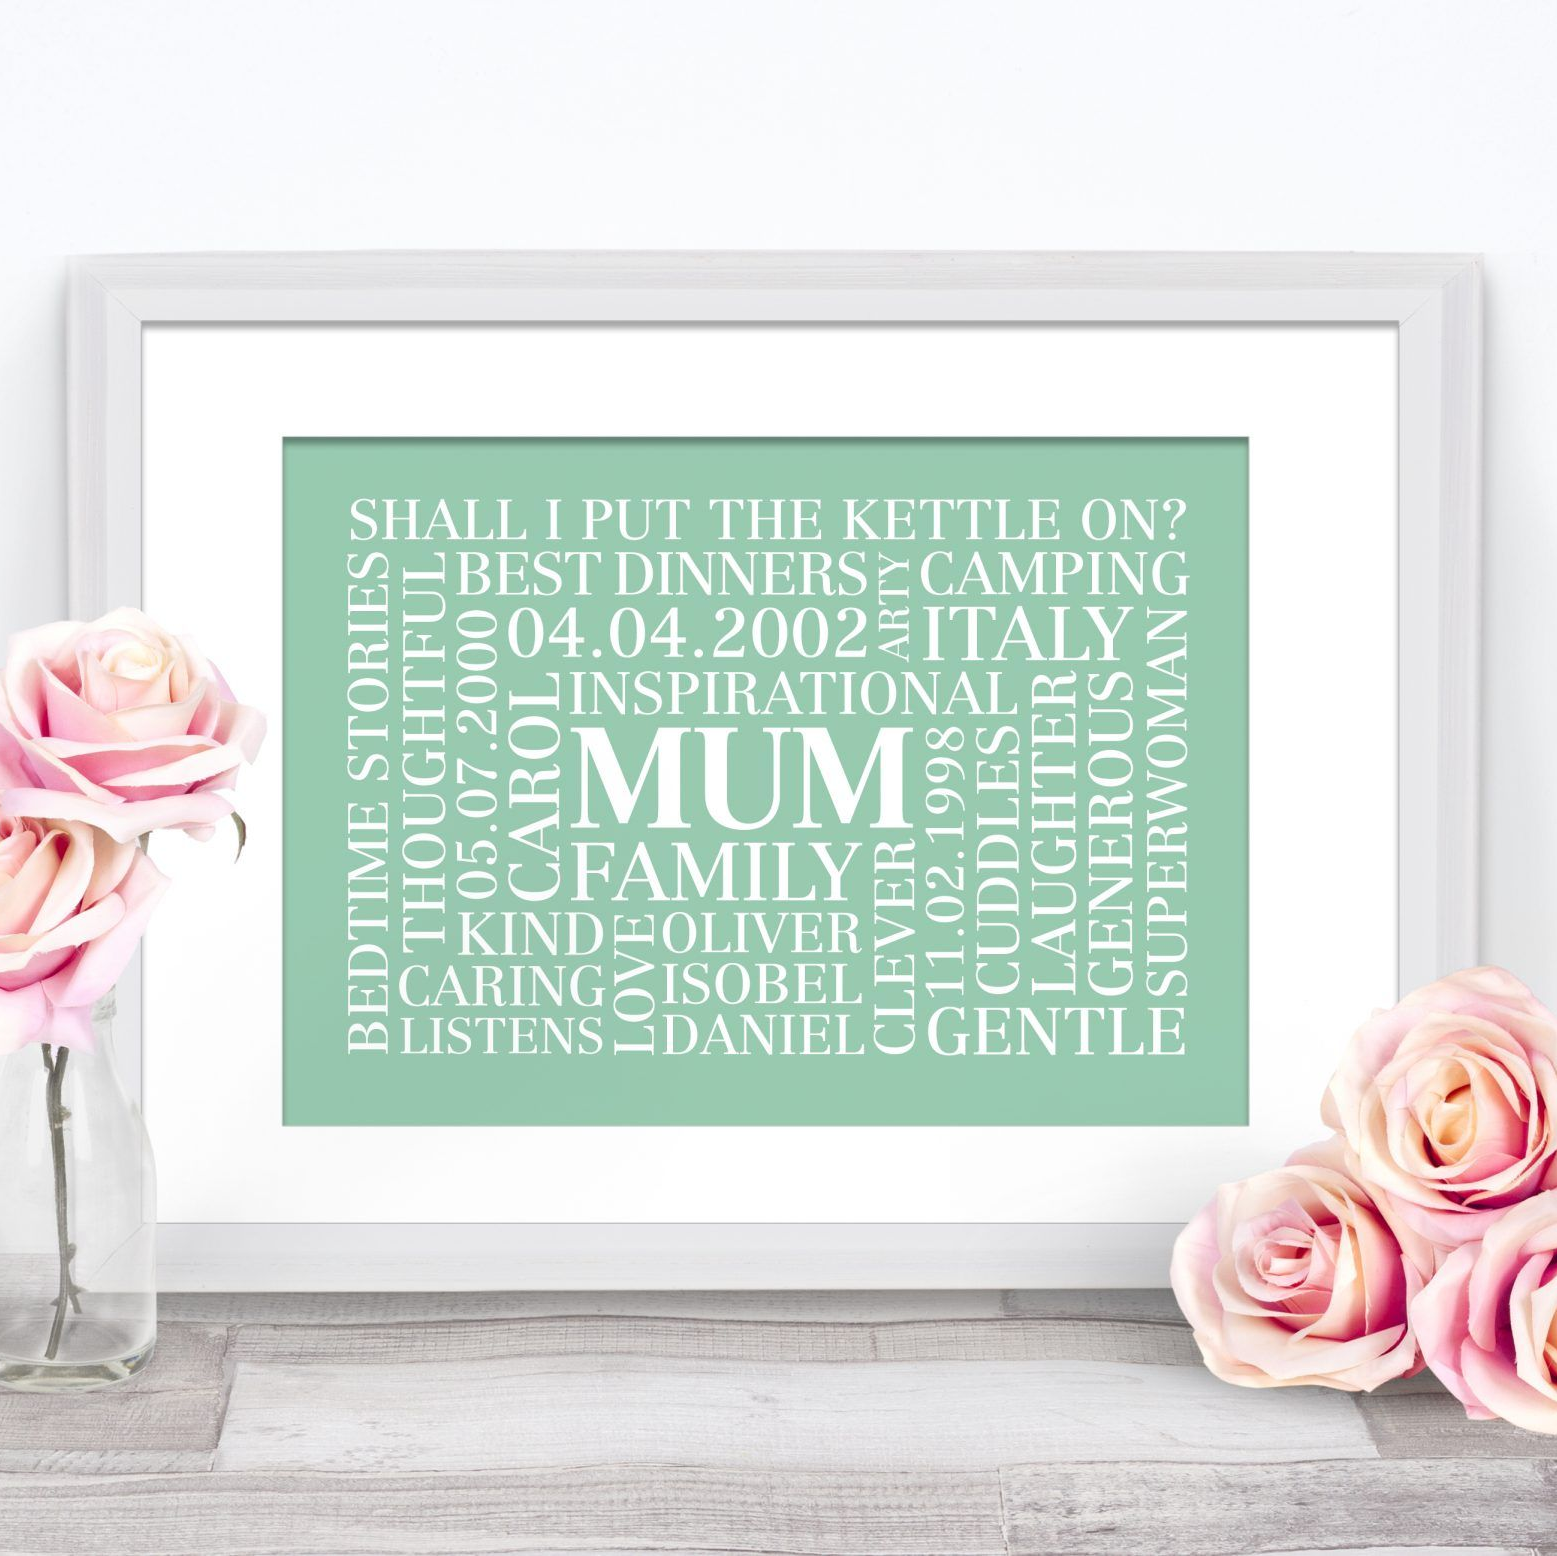 Word art frame with MUM at the center